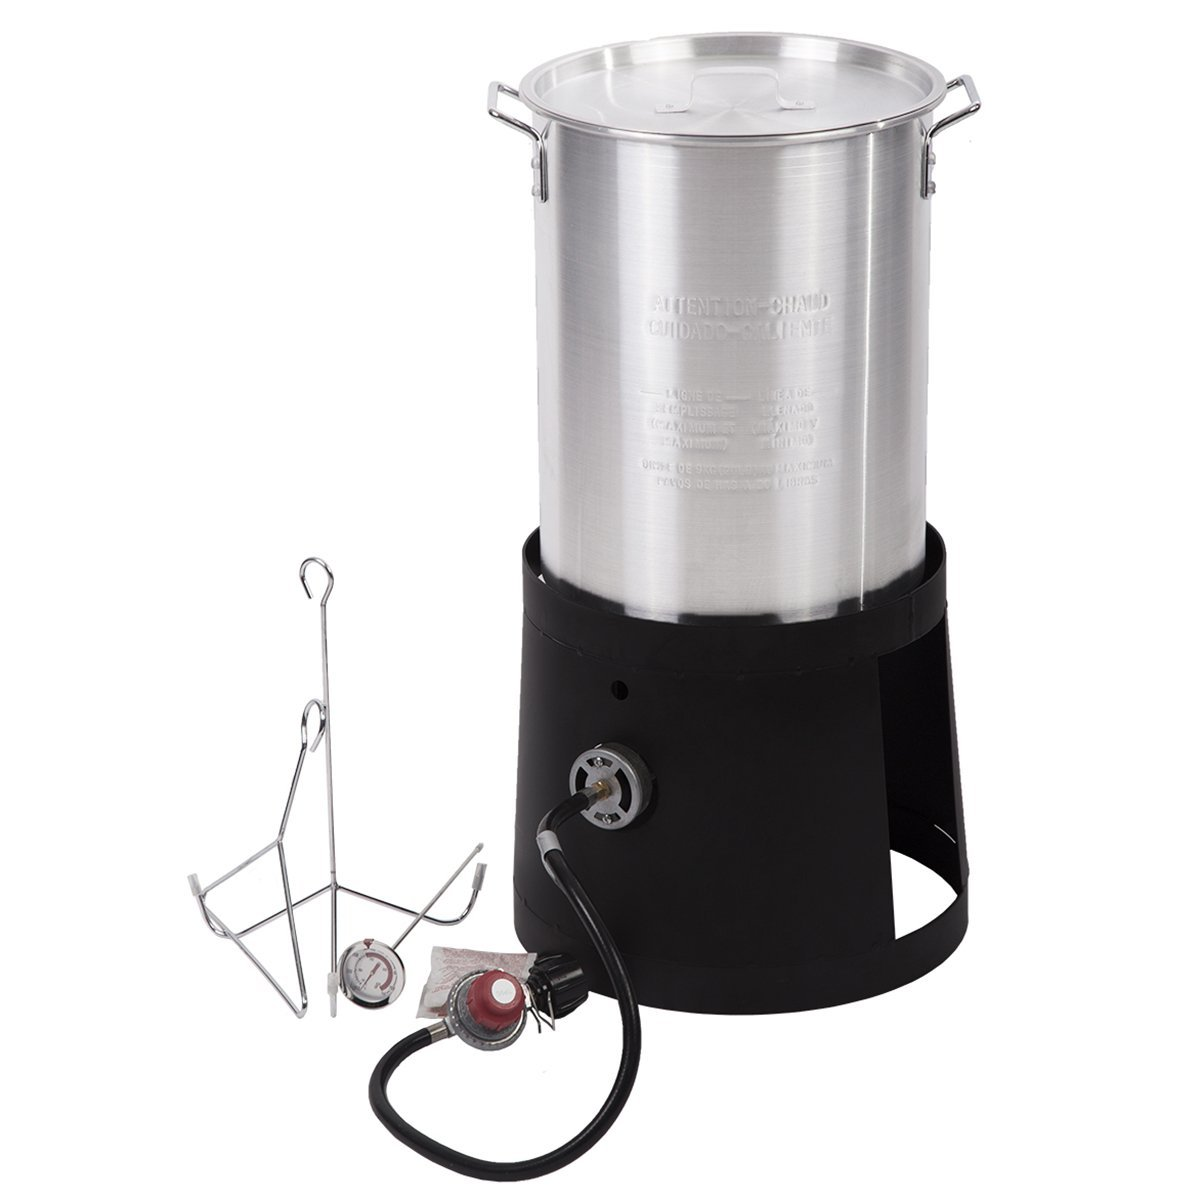 Portable Propane Cooker With 30-Quart Outdoor Turkey Fryer Kit Aluminum Pot R30